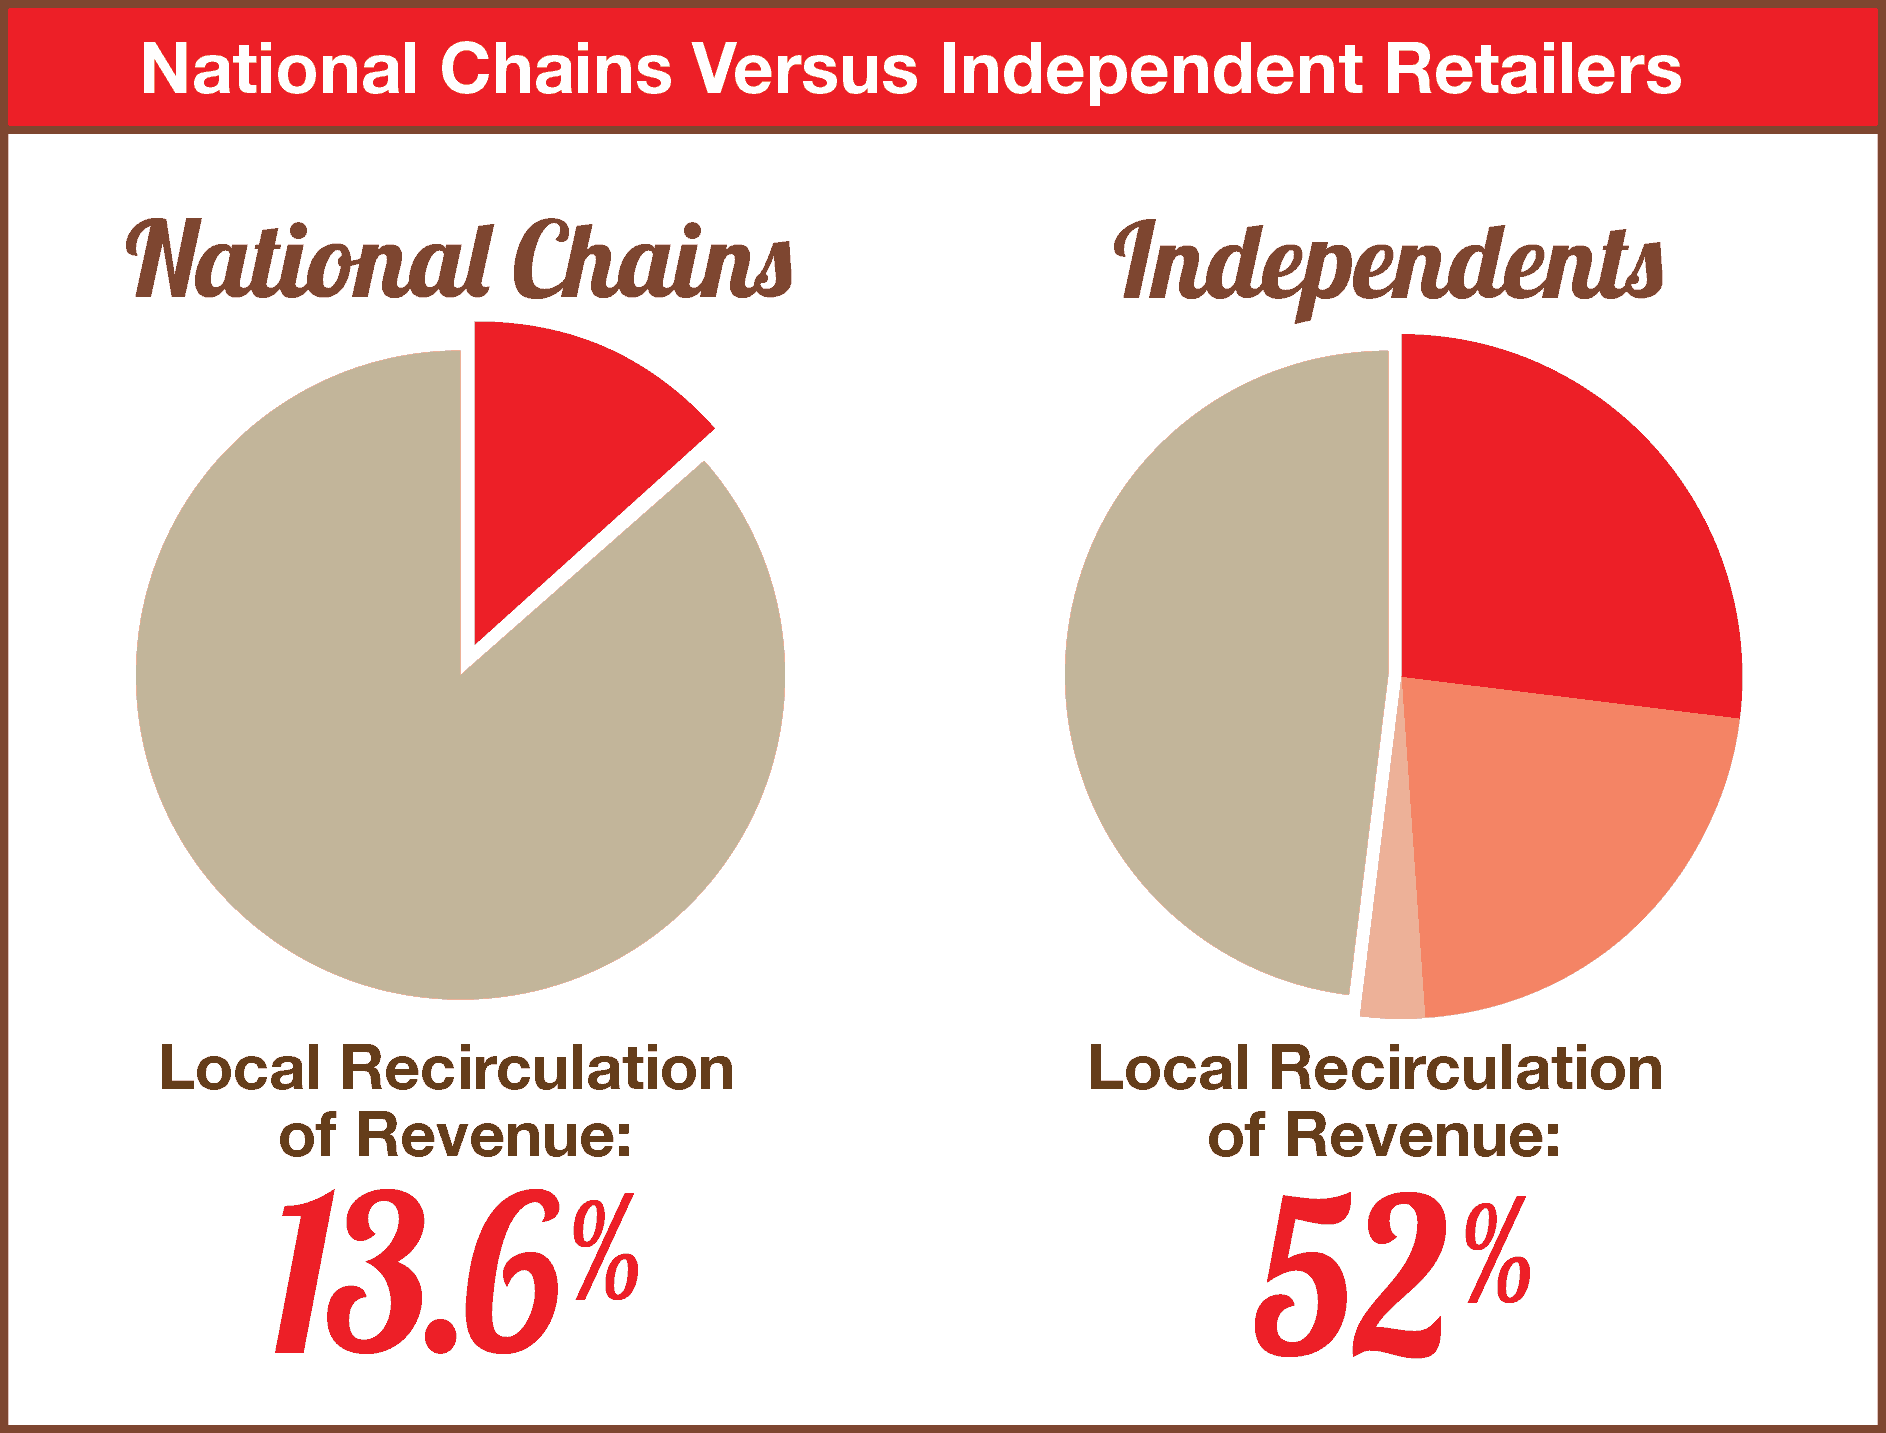 National Chains versus Independent Retailers